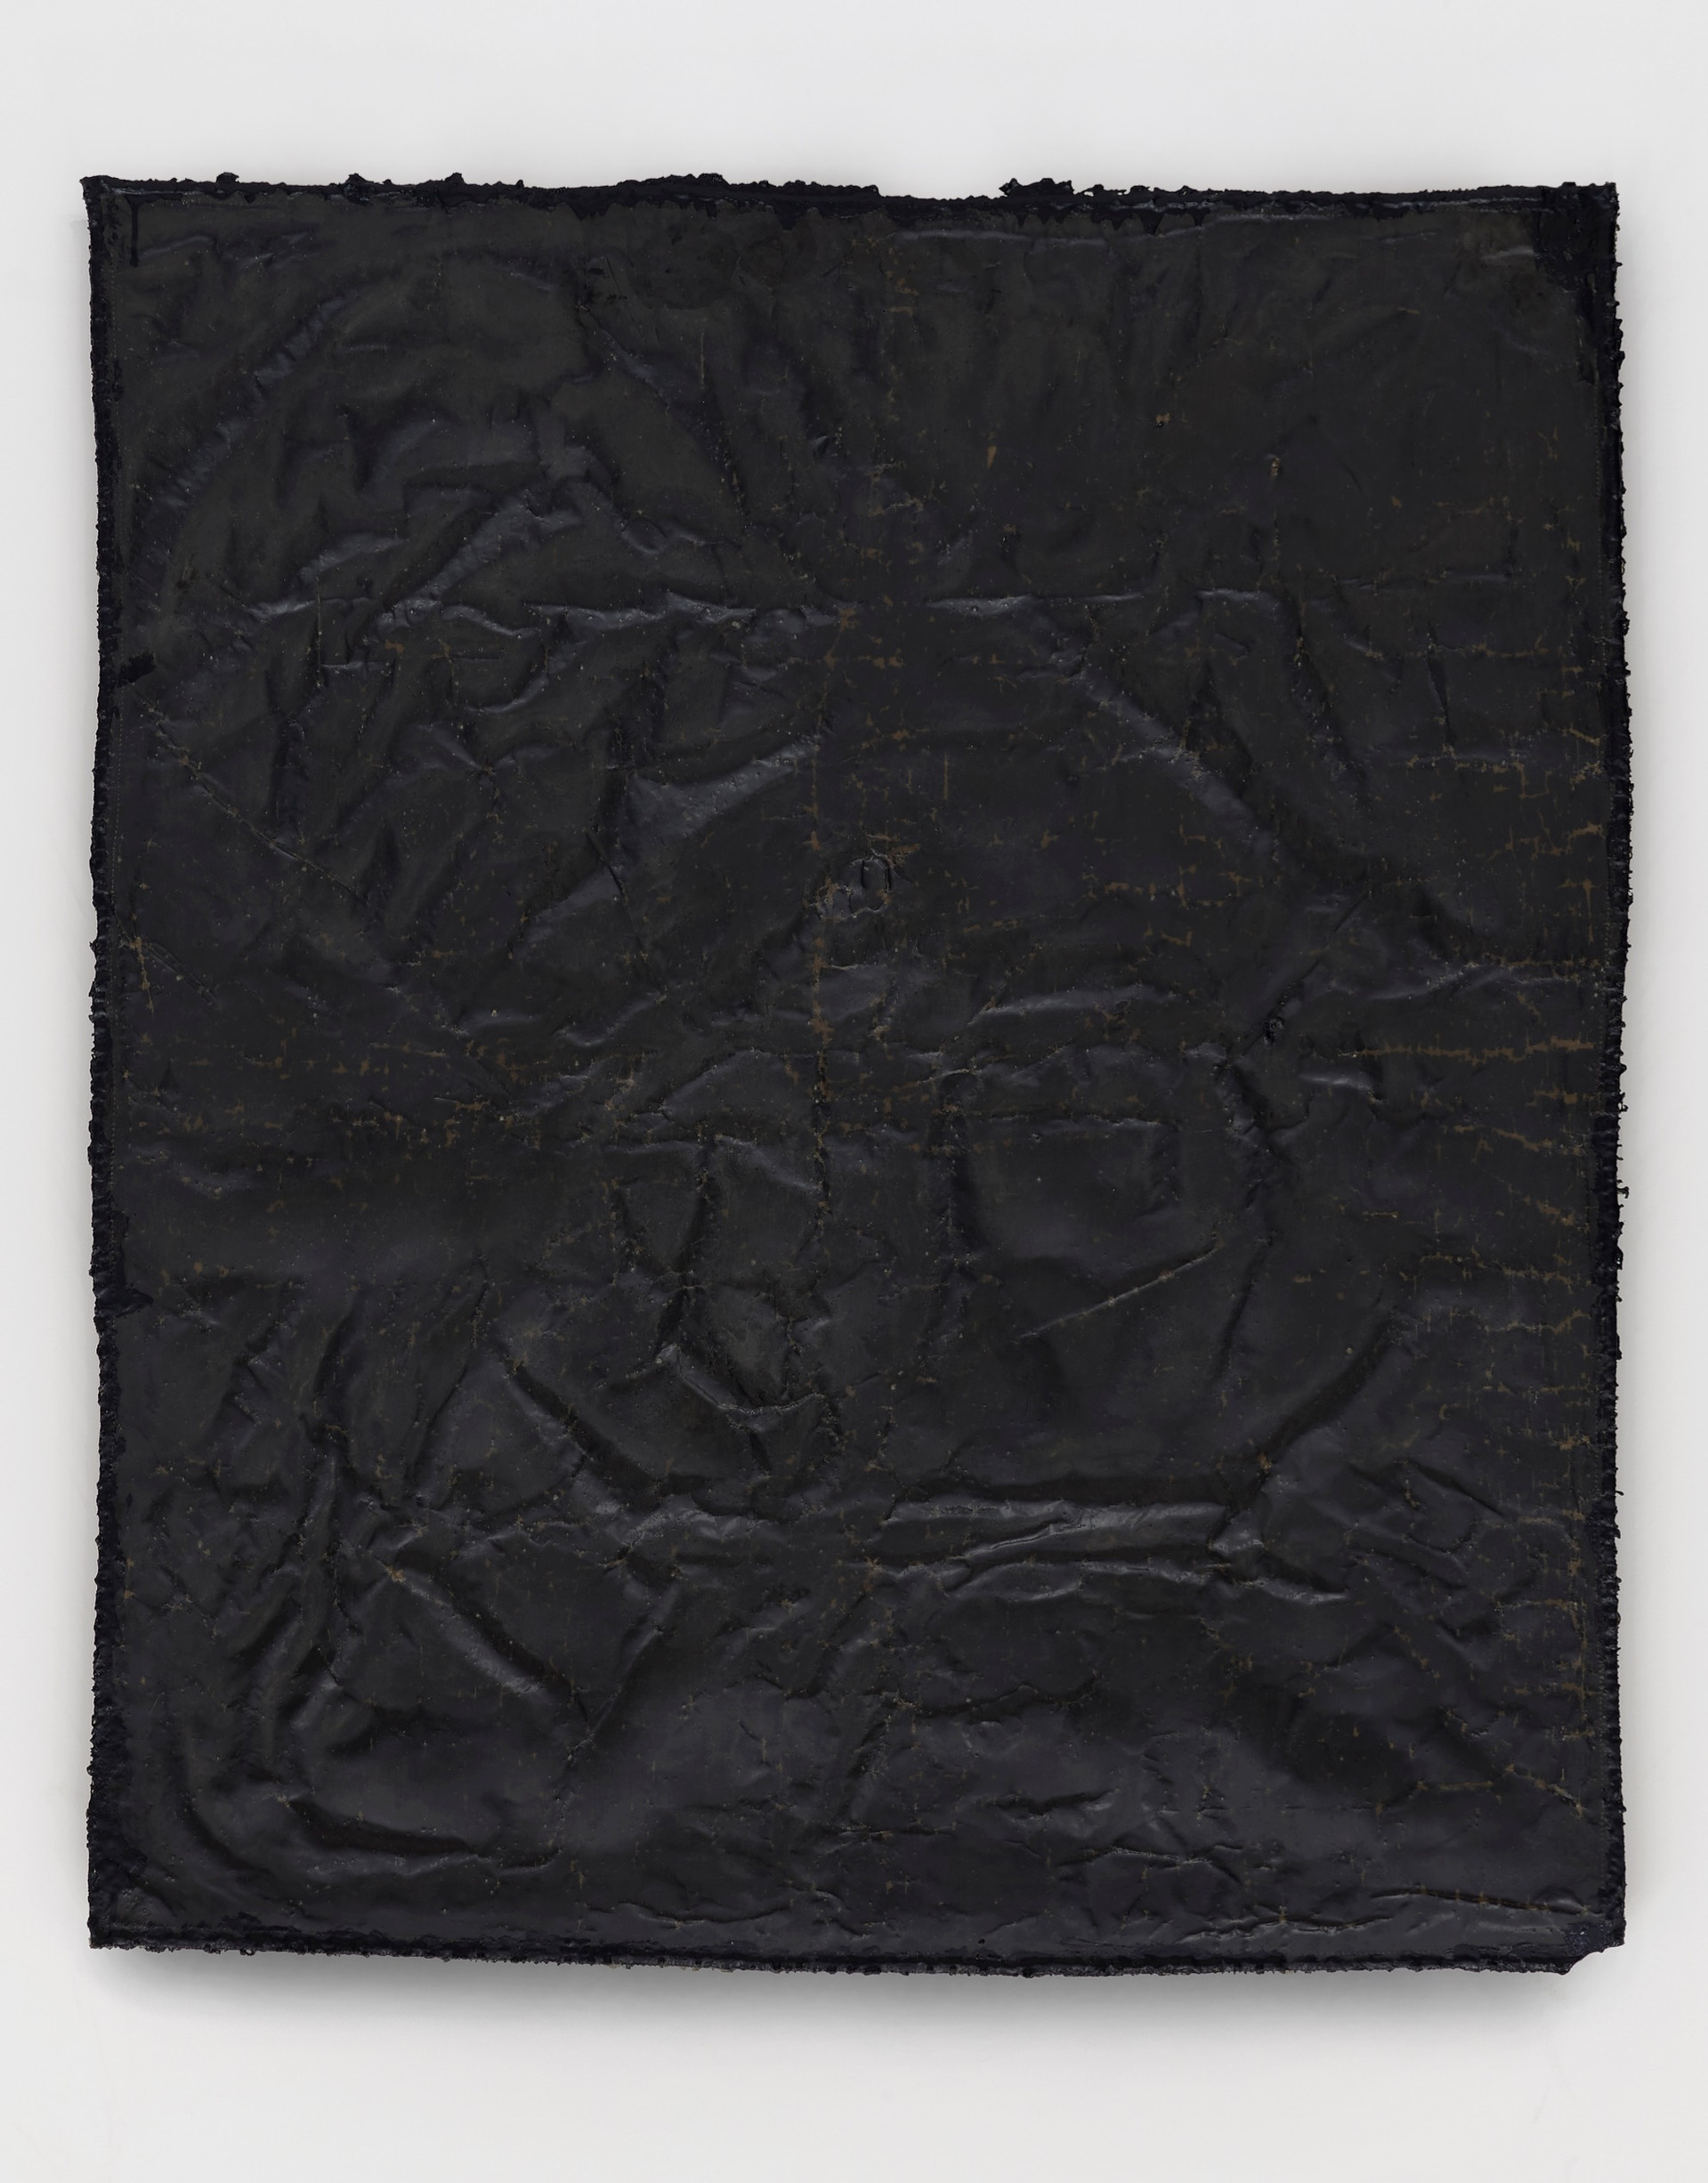 Helmut Lang  network # 4, 2019 Cotton, wax, resin, and tar on canvas 61 3/4 x 52 1/4 x 1 1/2 inches